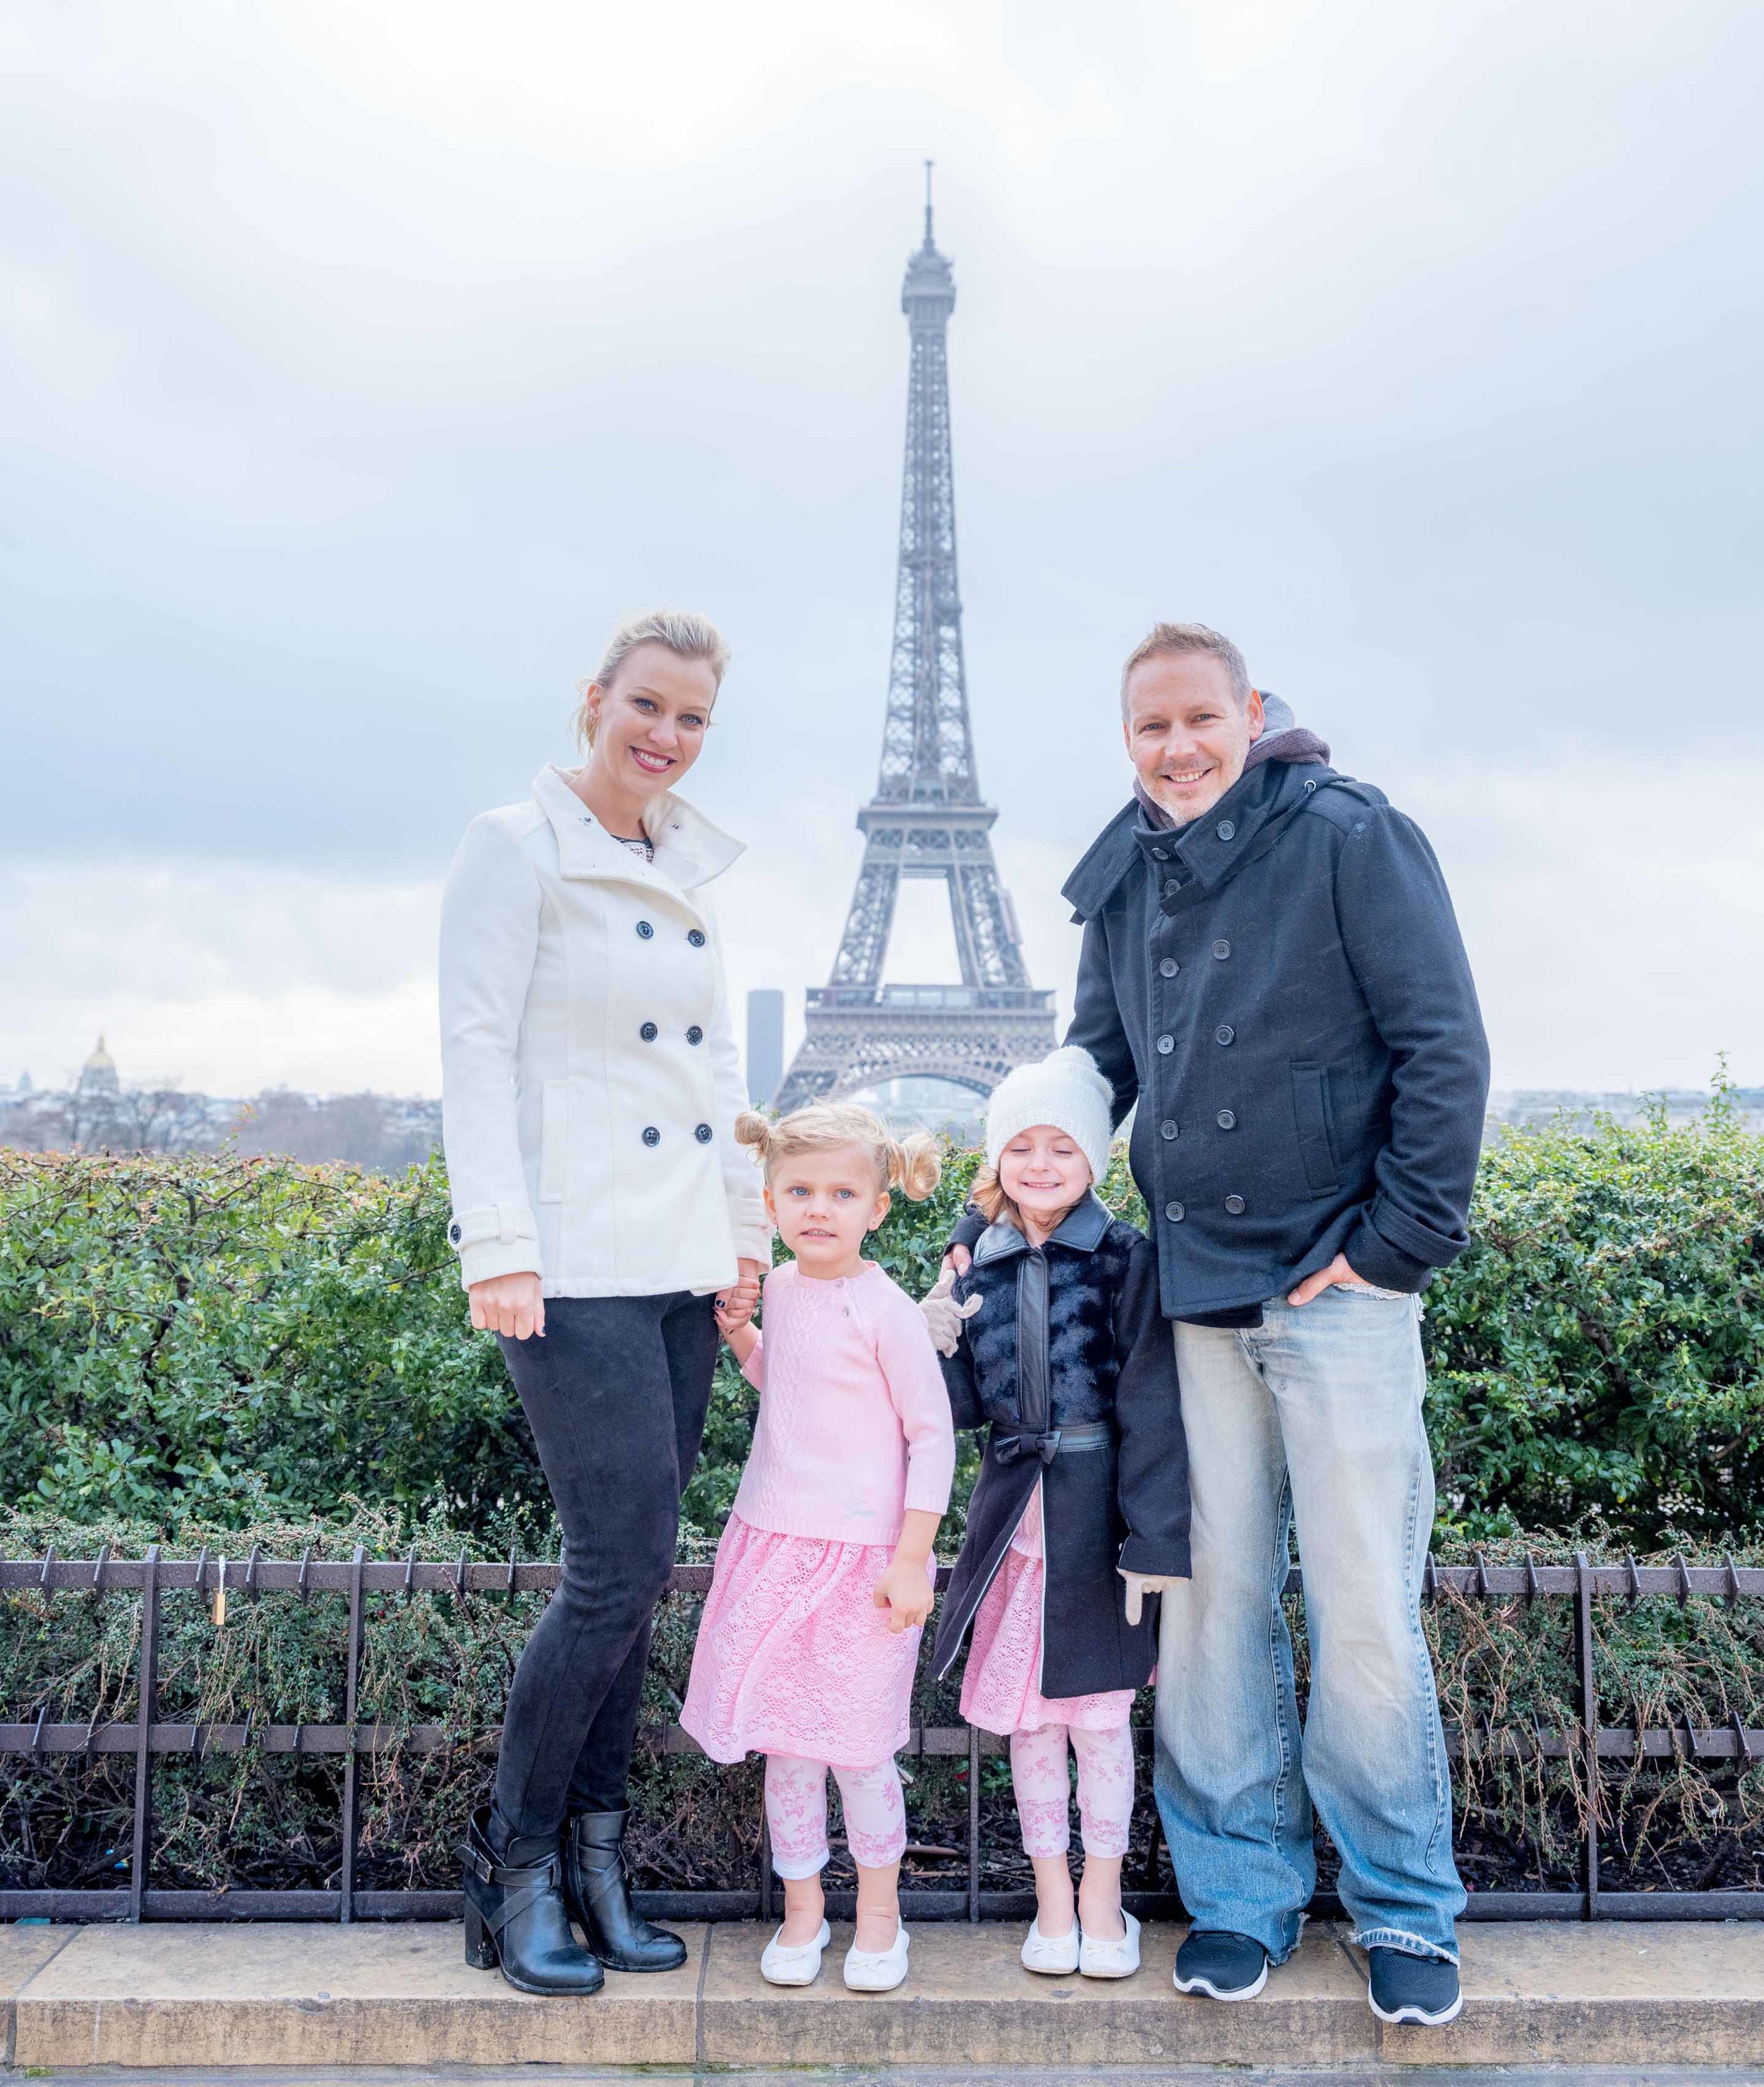 Family day in the Paris rain